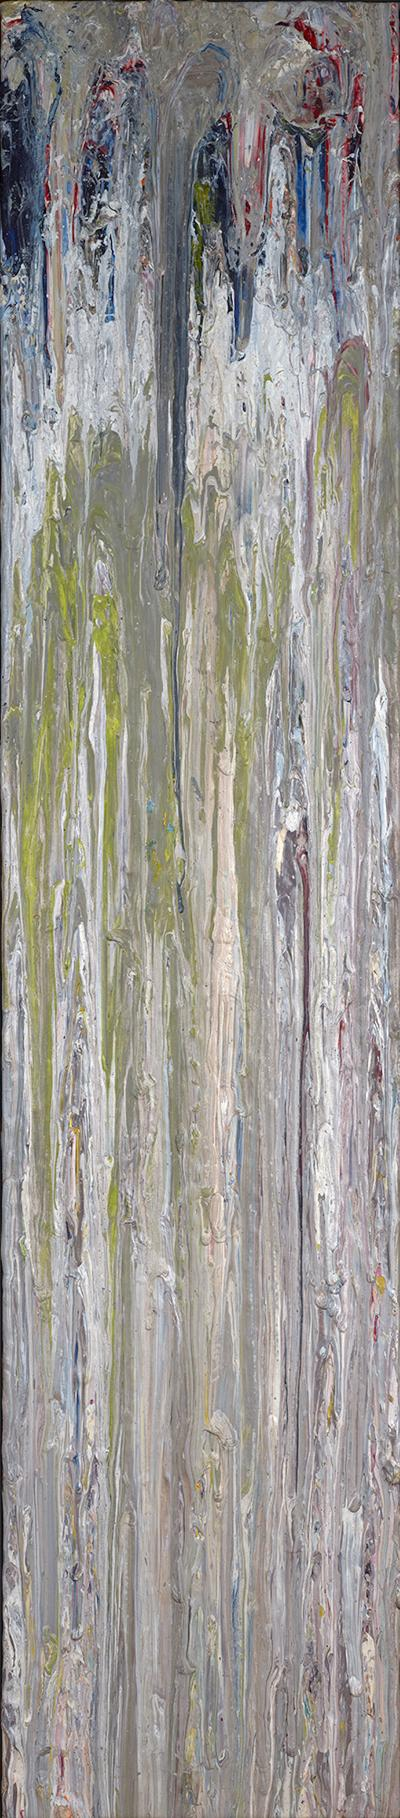 Larry Poons Untitled C 3